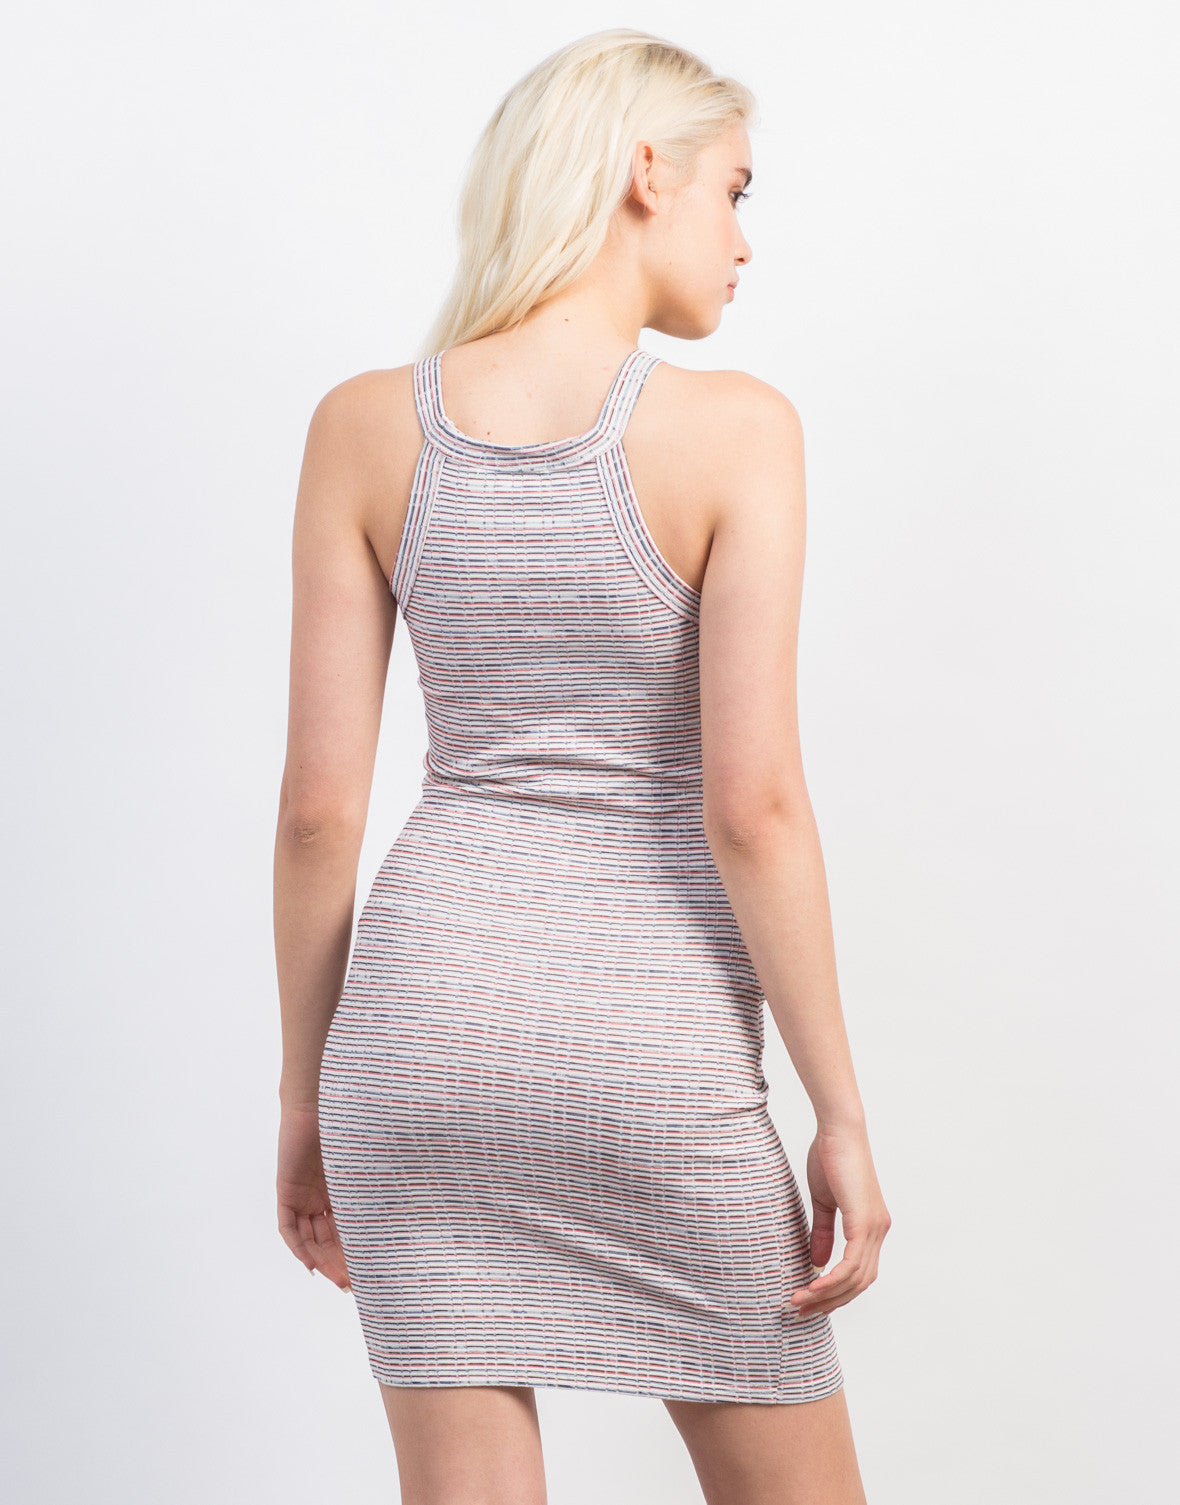 Back View of Multi Striped Day Dress